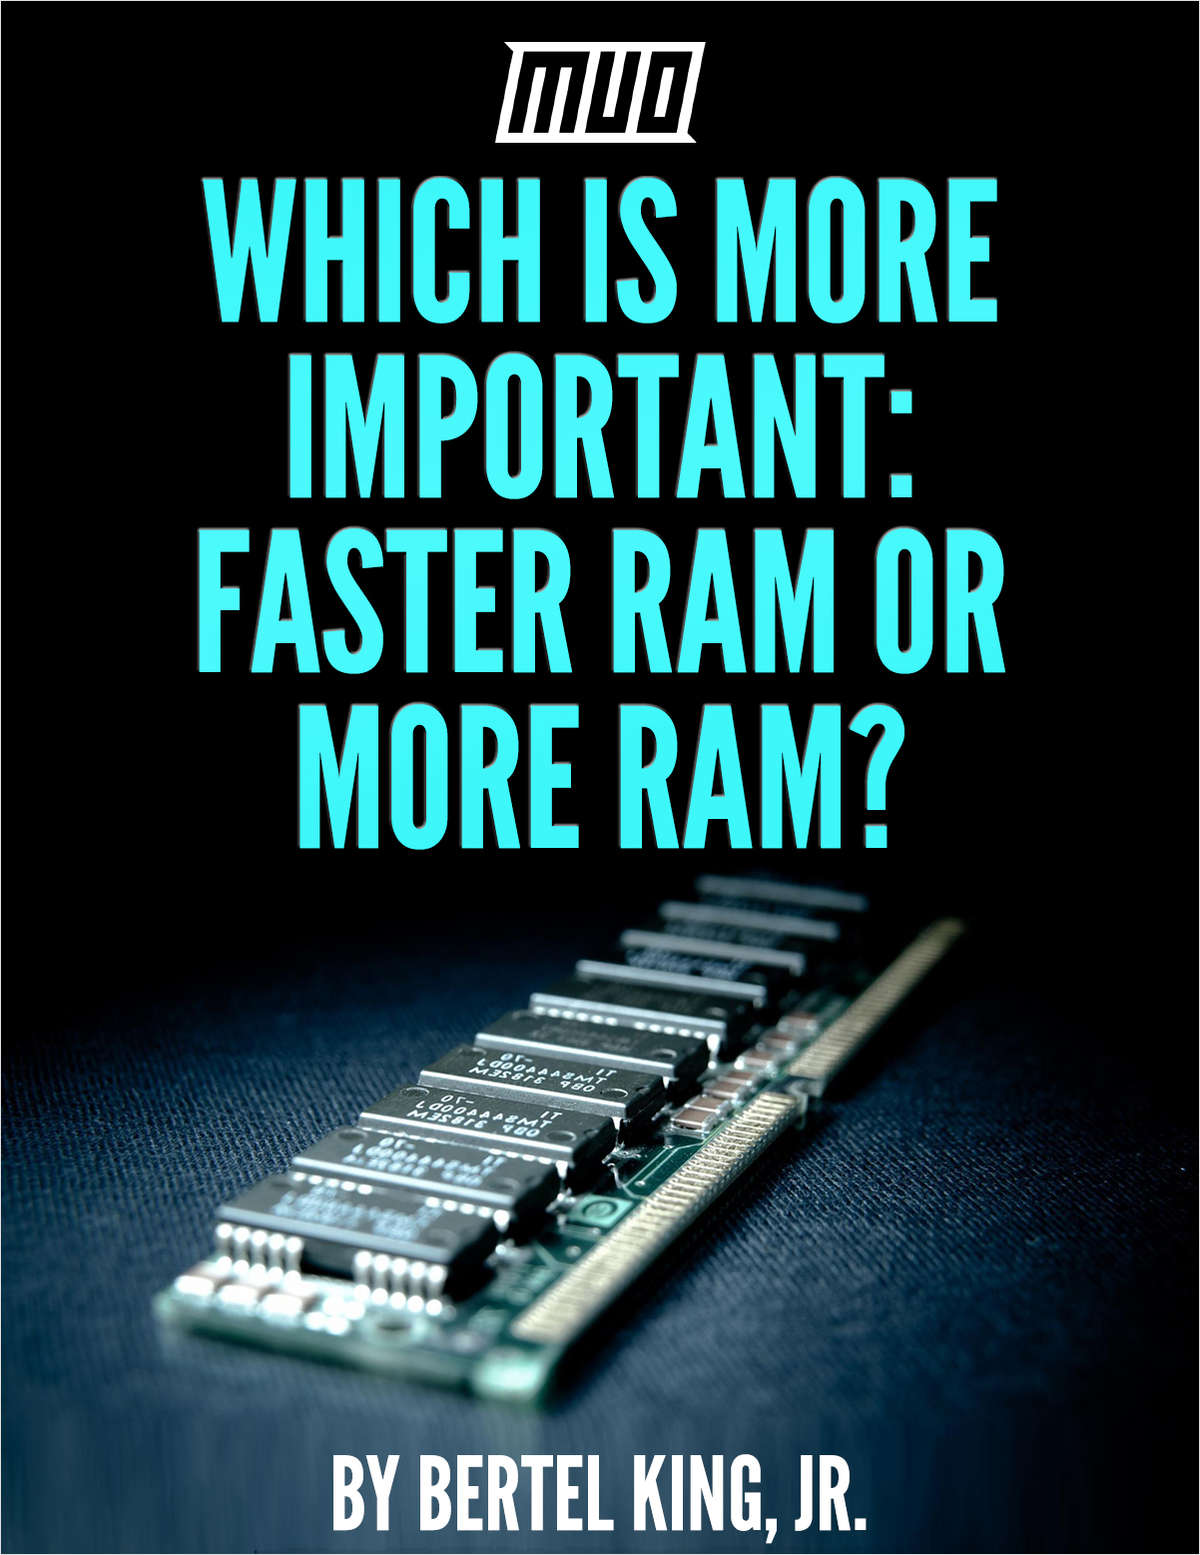 Which Is More Important - Faster Ram or More Ram?